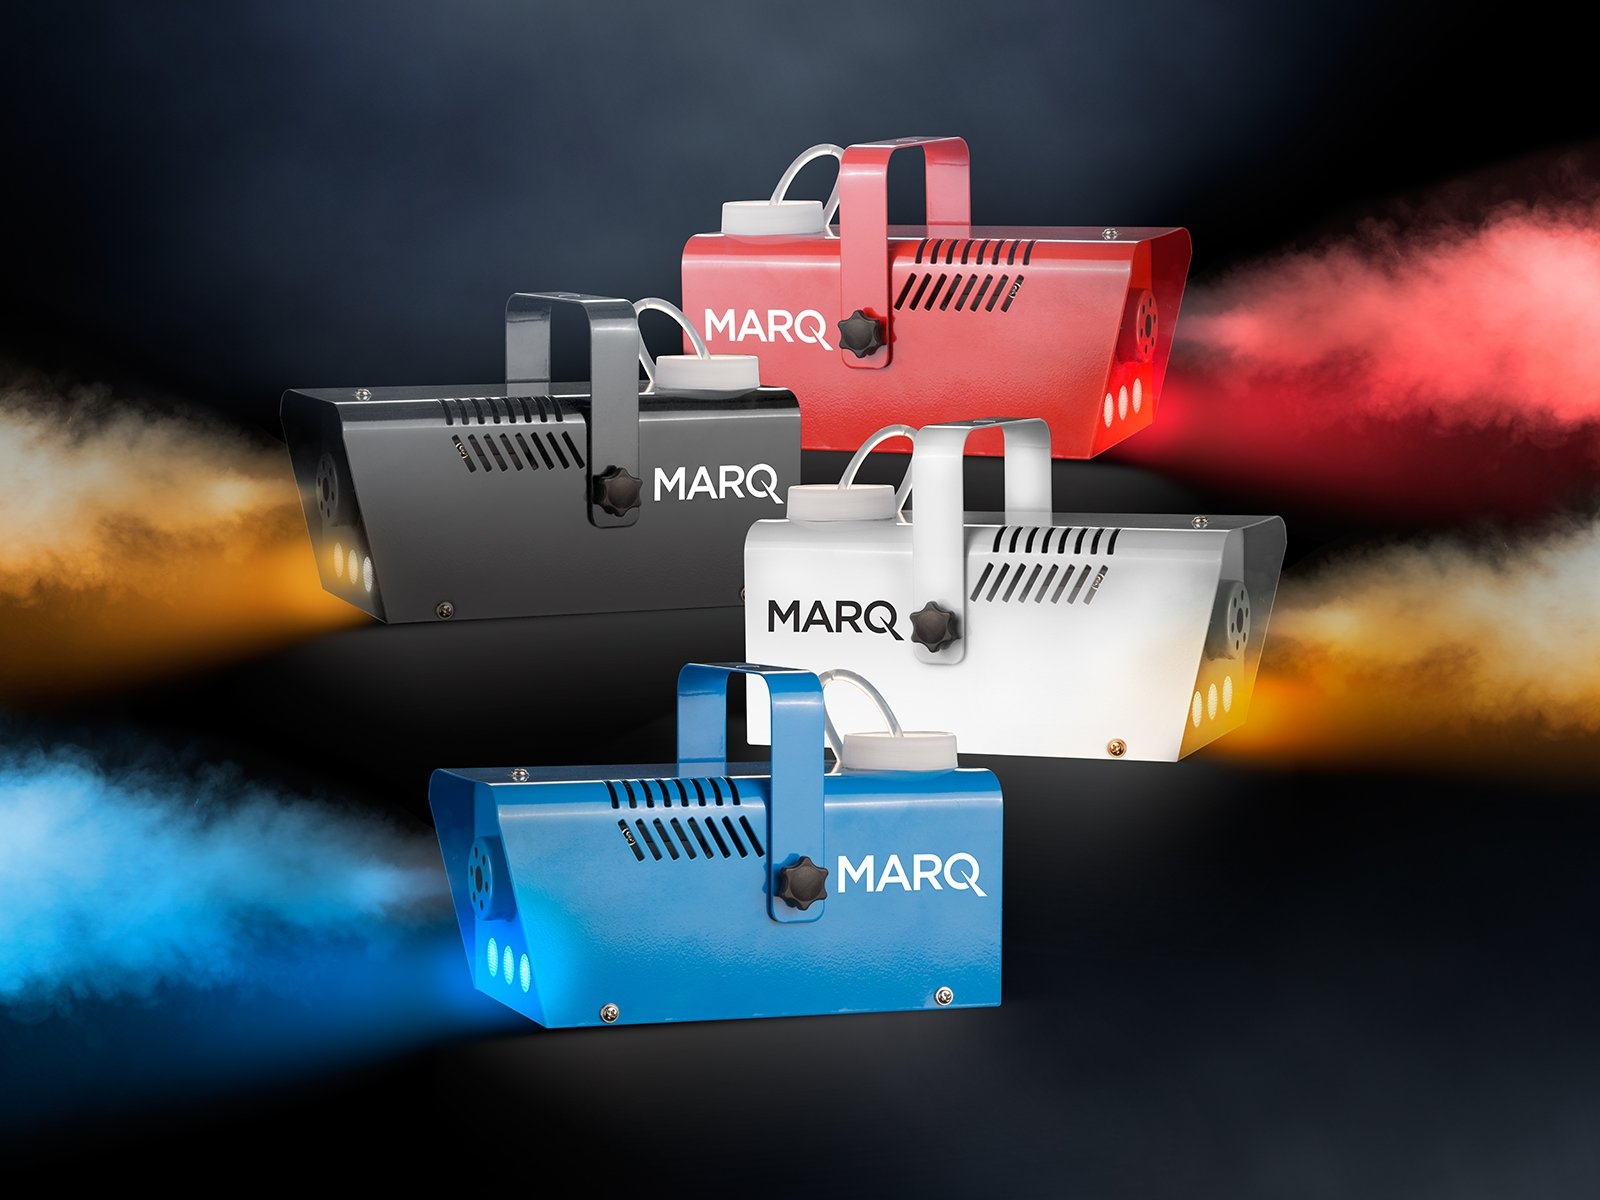 MARQ Fog 400 LED | 400W Water-Based Special Effects Fog Machine with Red-Color LED Lights (Red)